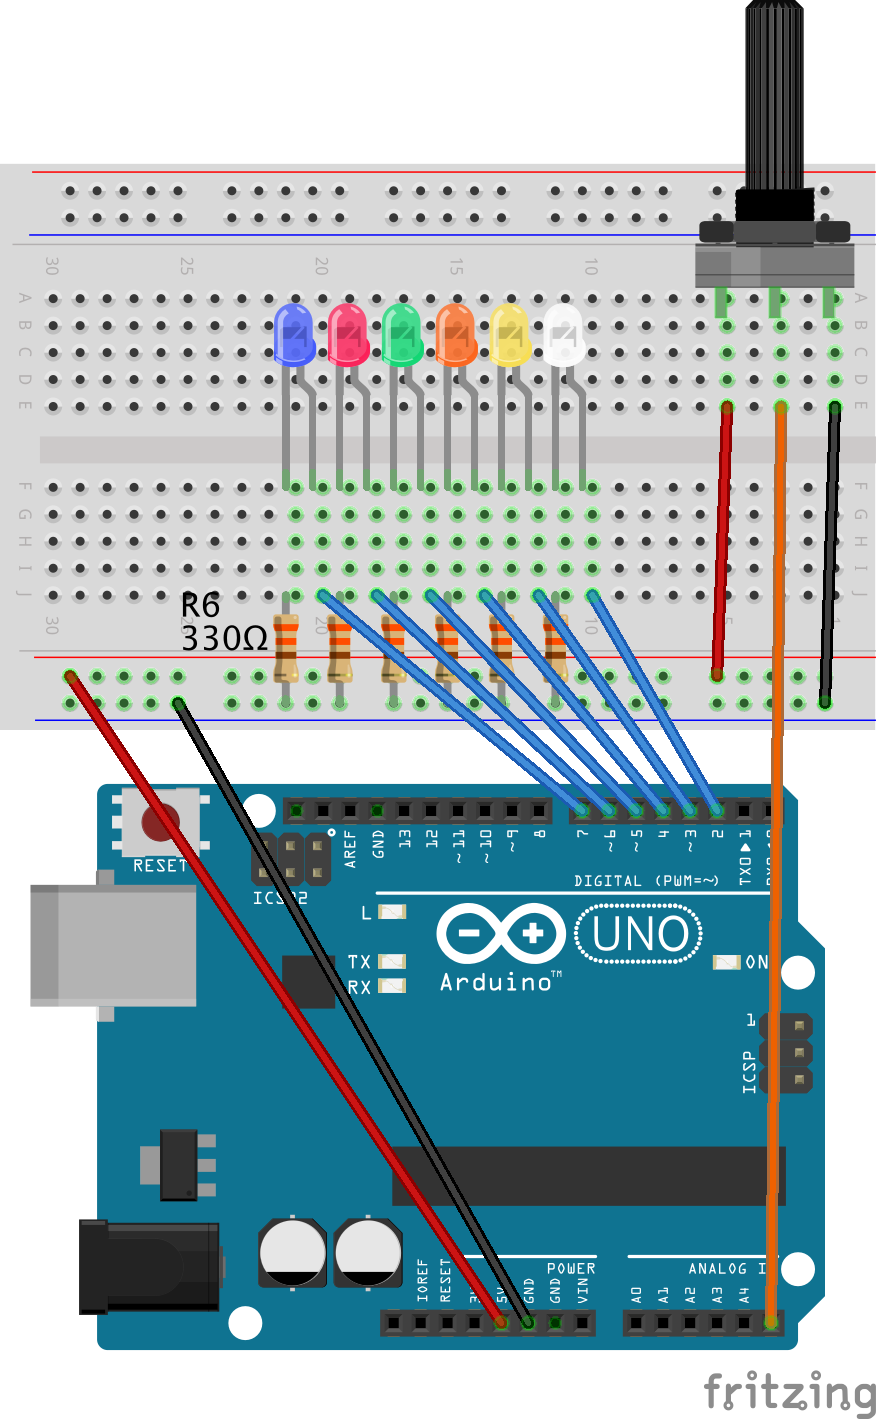 A Simple Circuit An Arduino And Haskell Dave2 1 Basiccircuit6leds View Full Size